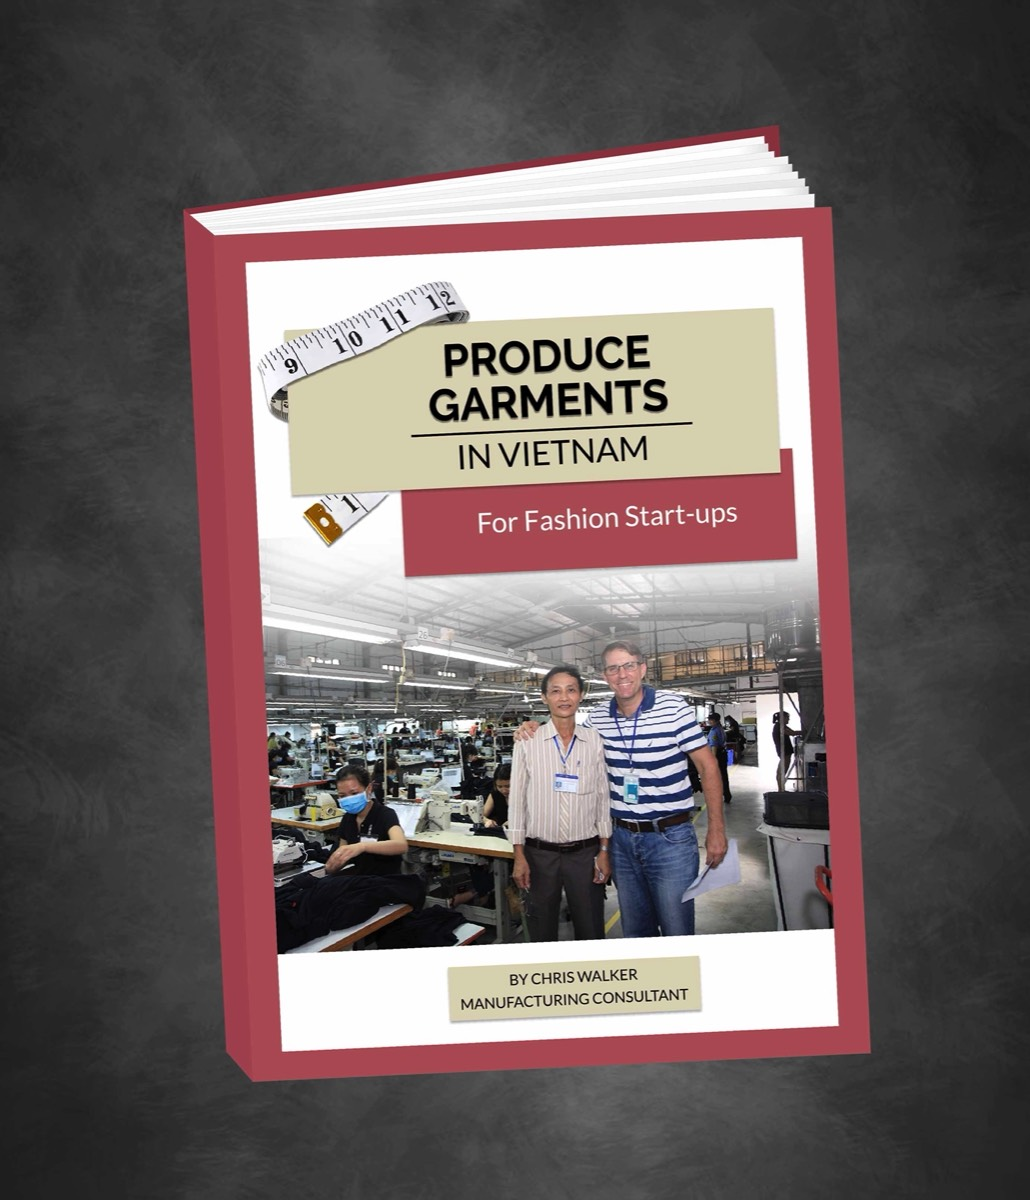 Listen to audio book about garment production